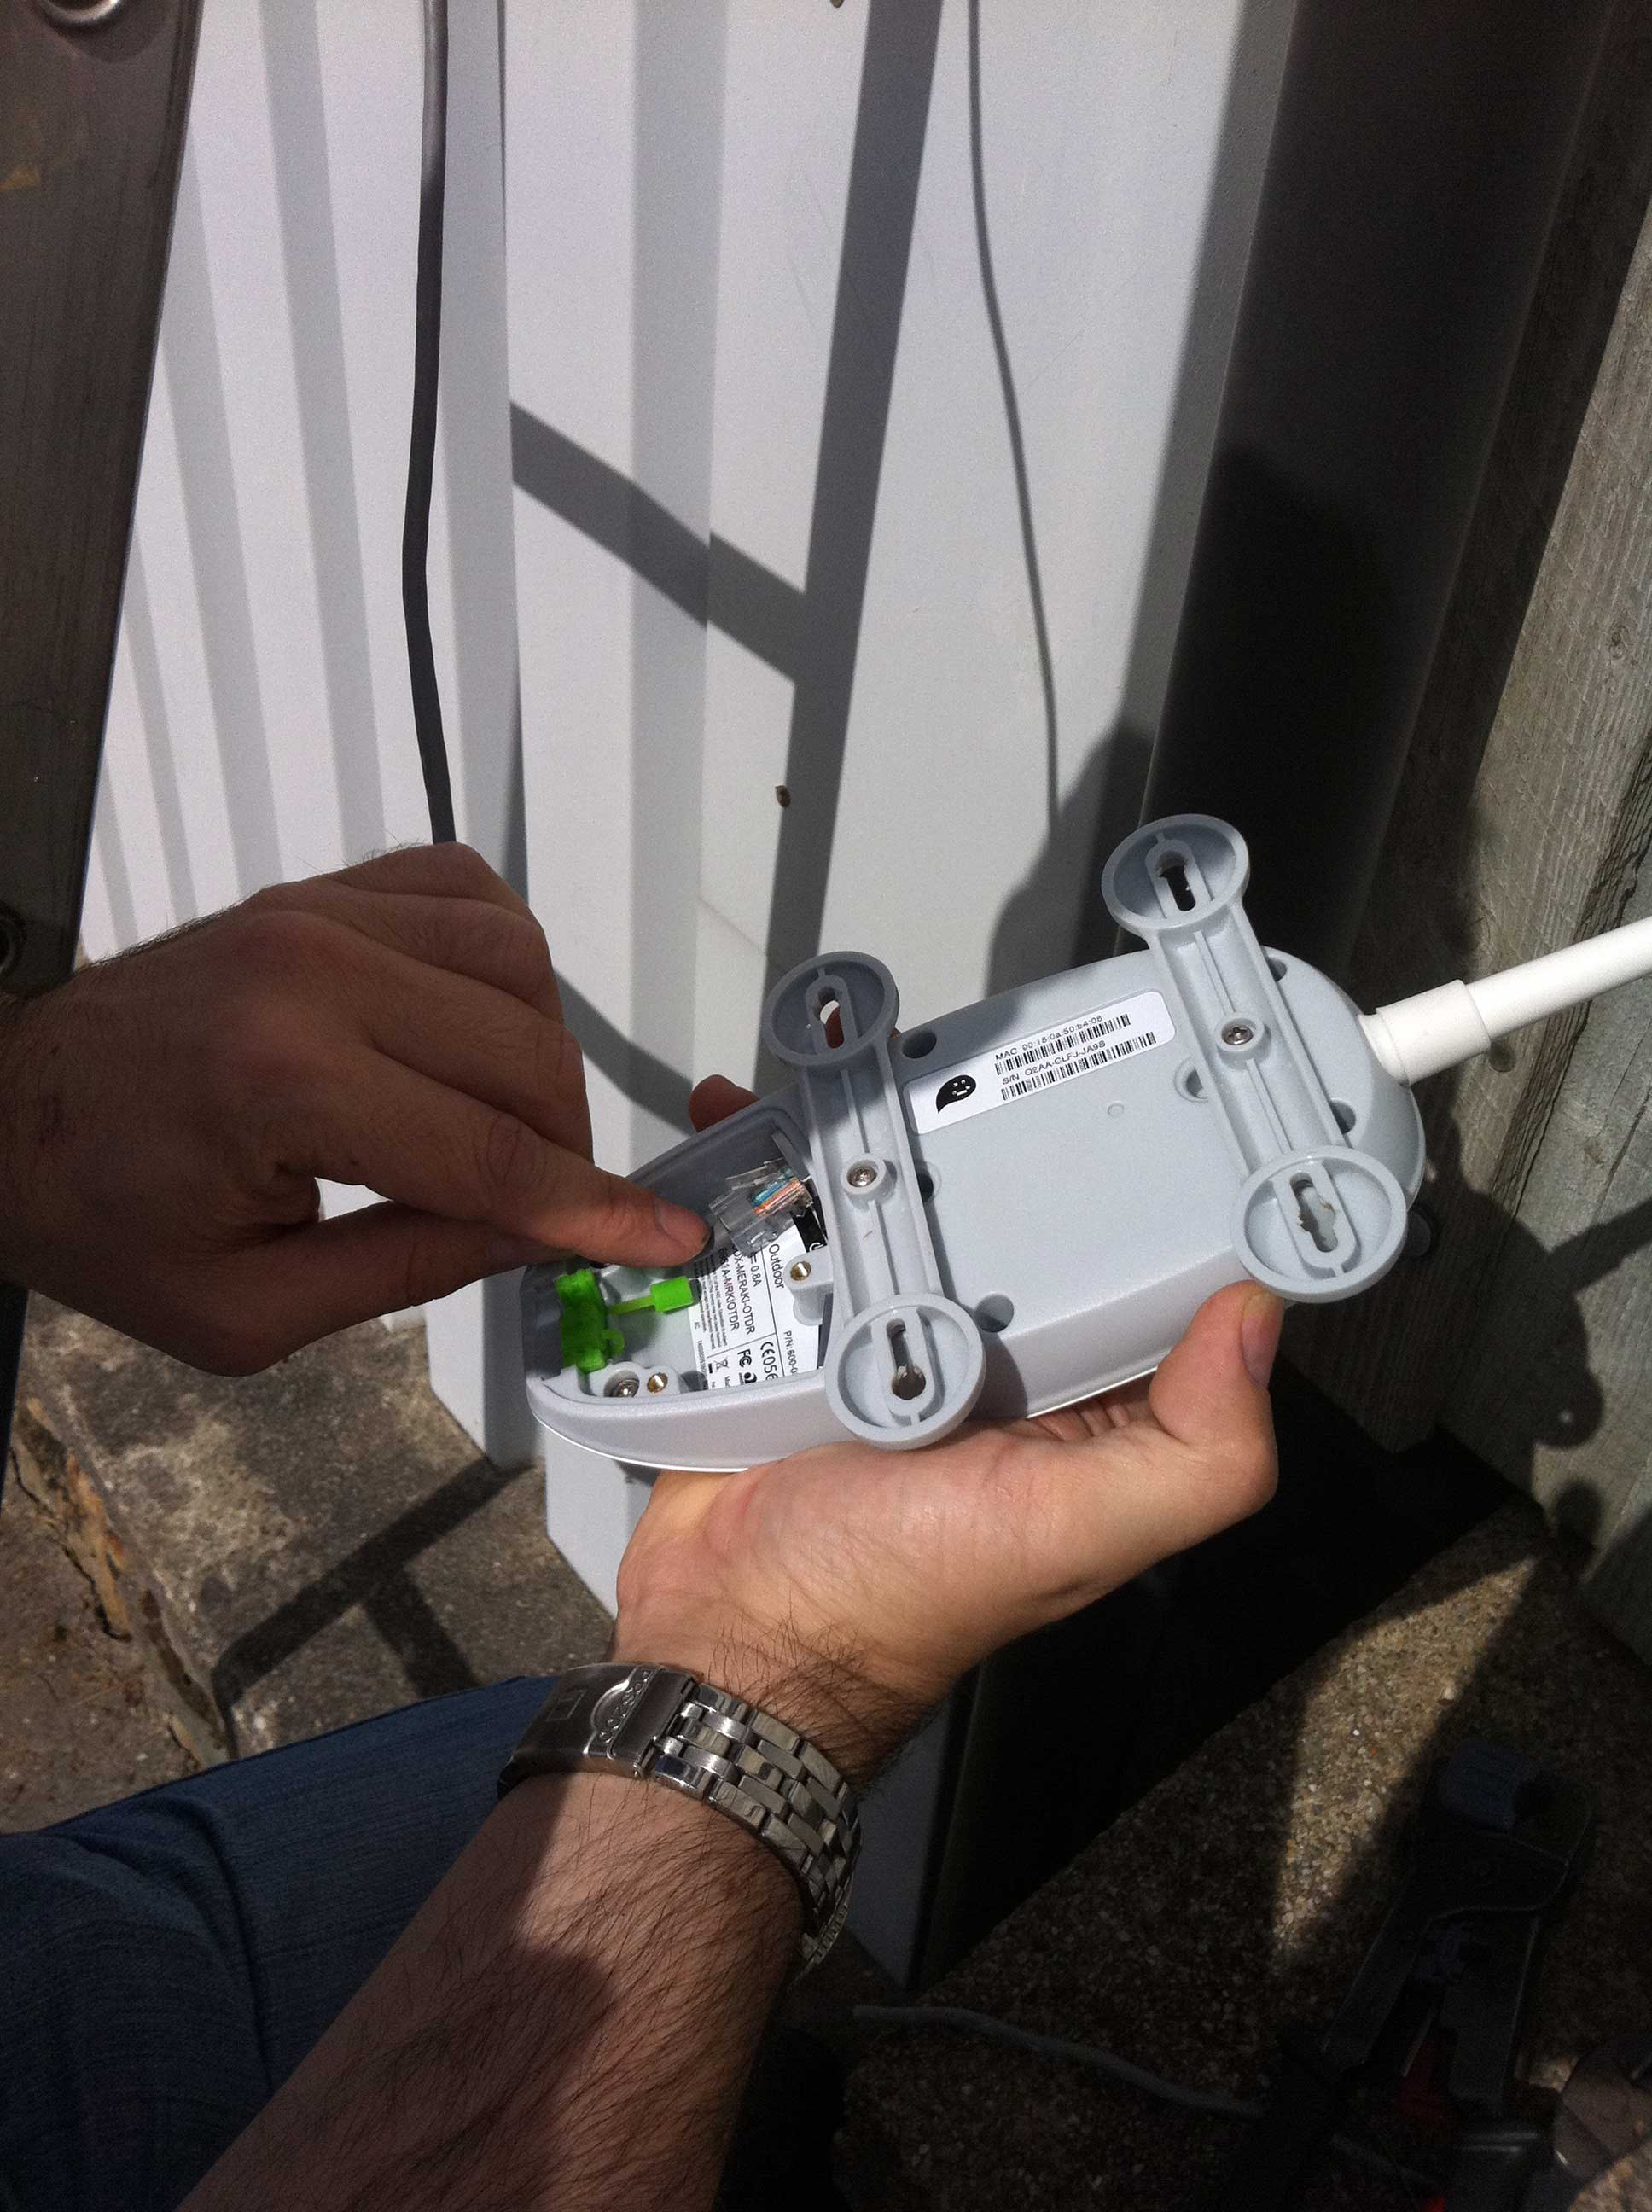 Connecting the cable to the Meraki Outdoor Unit